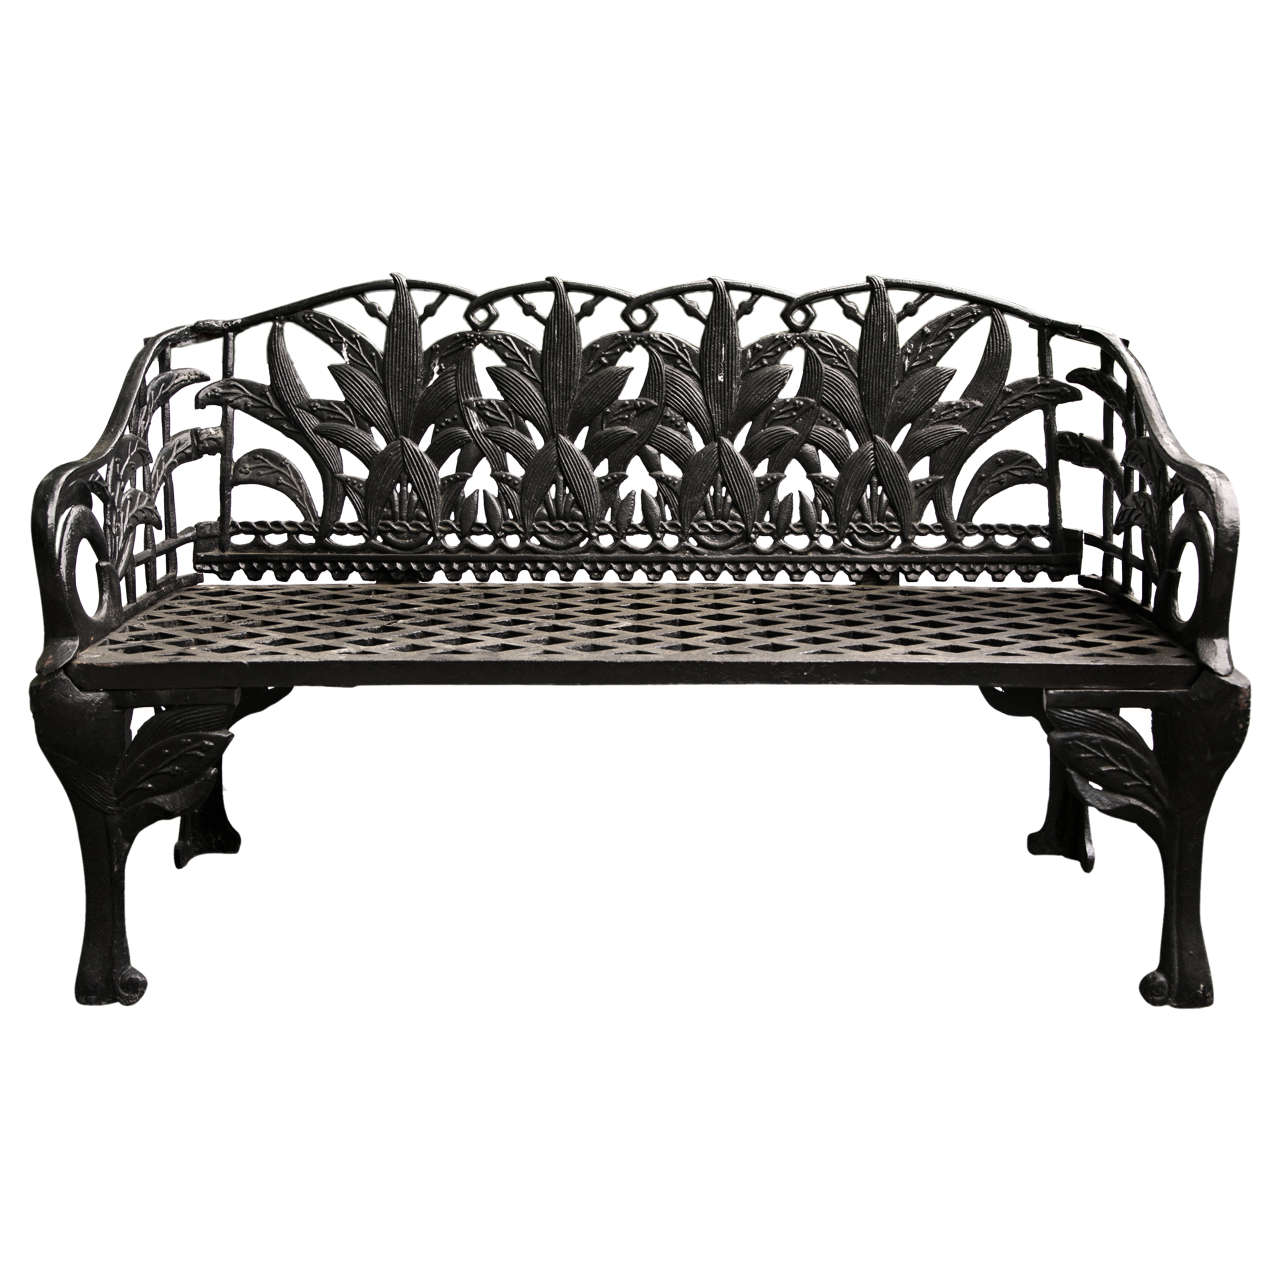 Pair Of Black Cast Iron Benches At 1stdibs